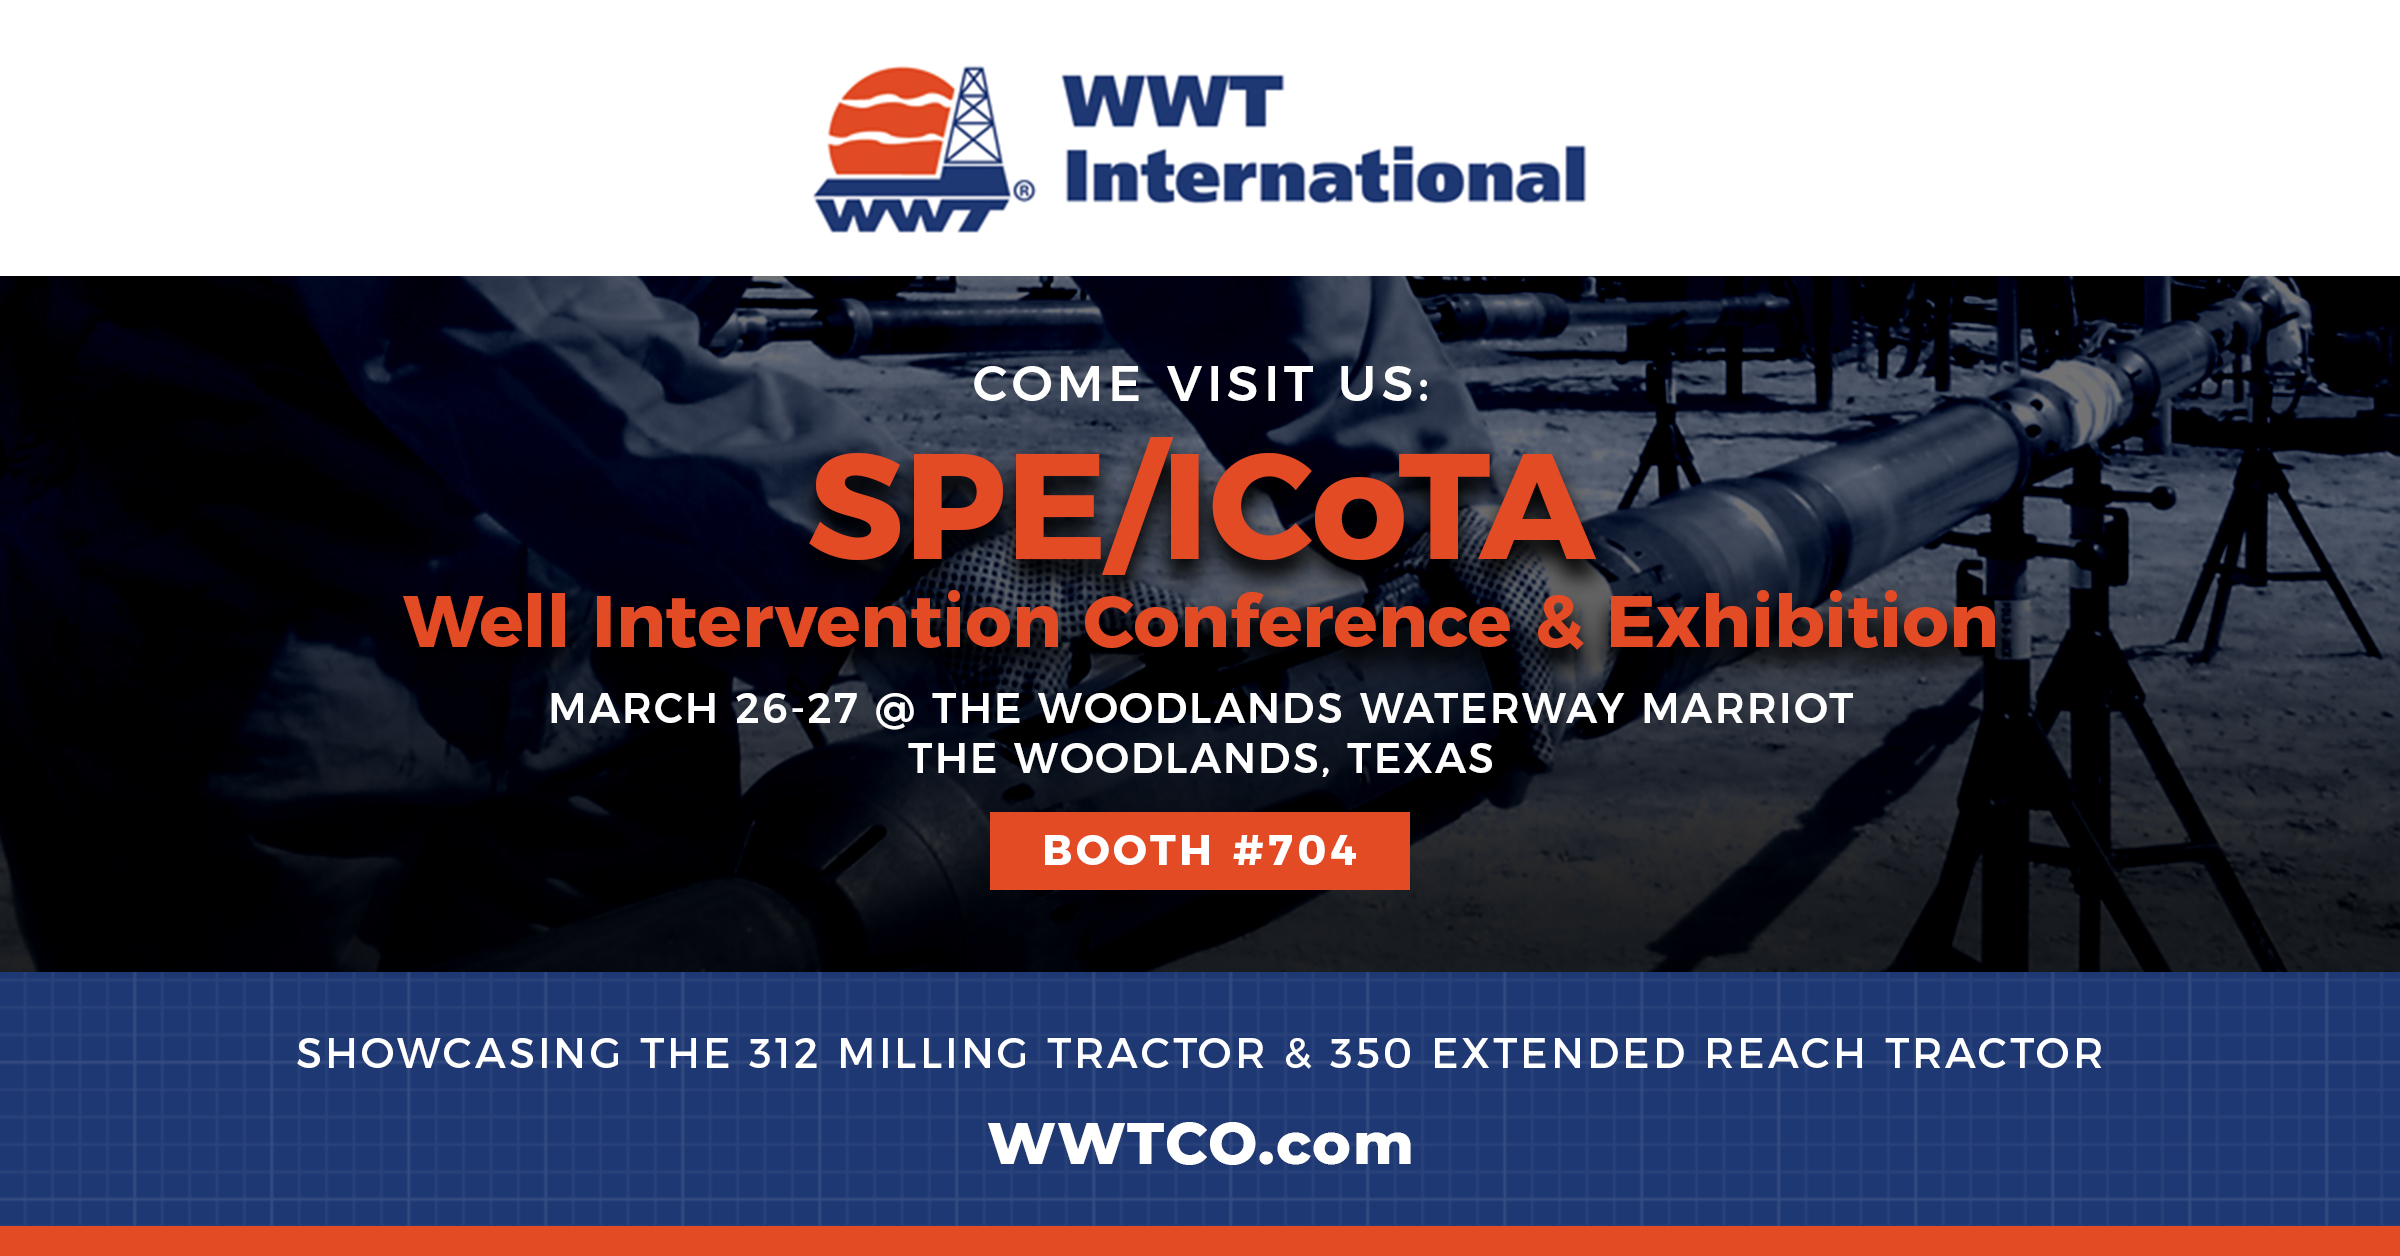 LAST DAY: WWT International Joining SPE/ICoTA Well Intervention Conference and Exhibition 2019